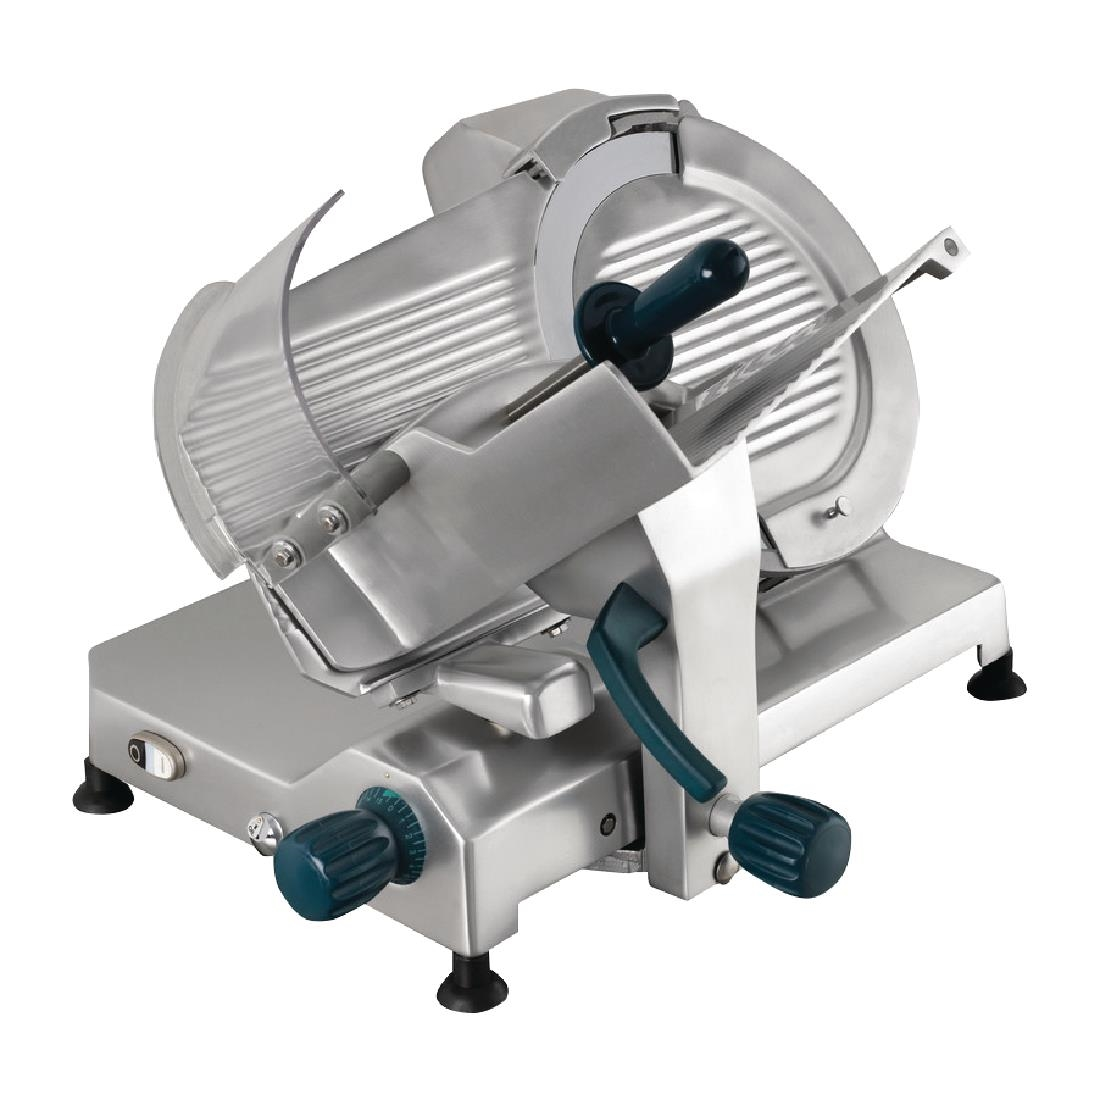 Hobart Food Slicer SL350